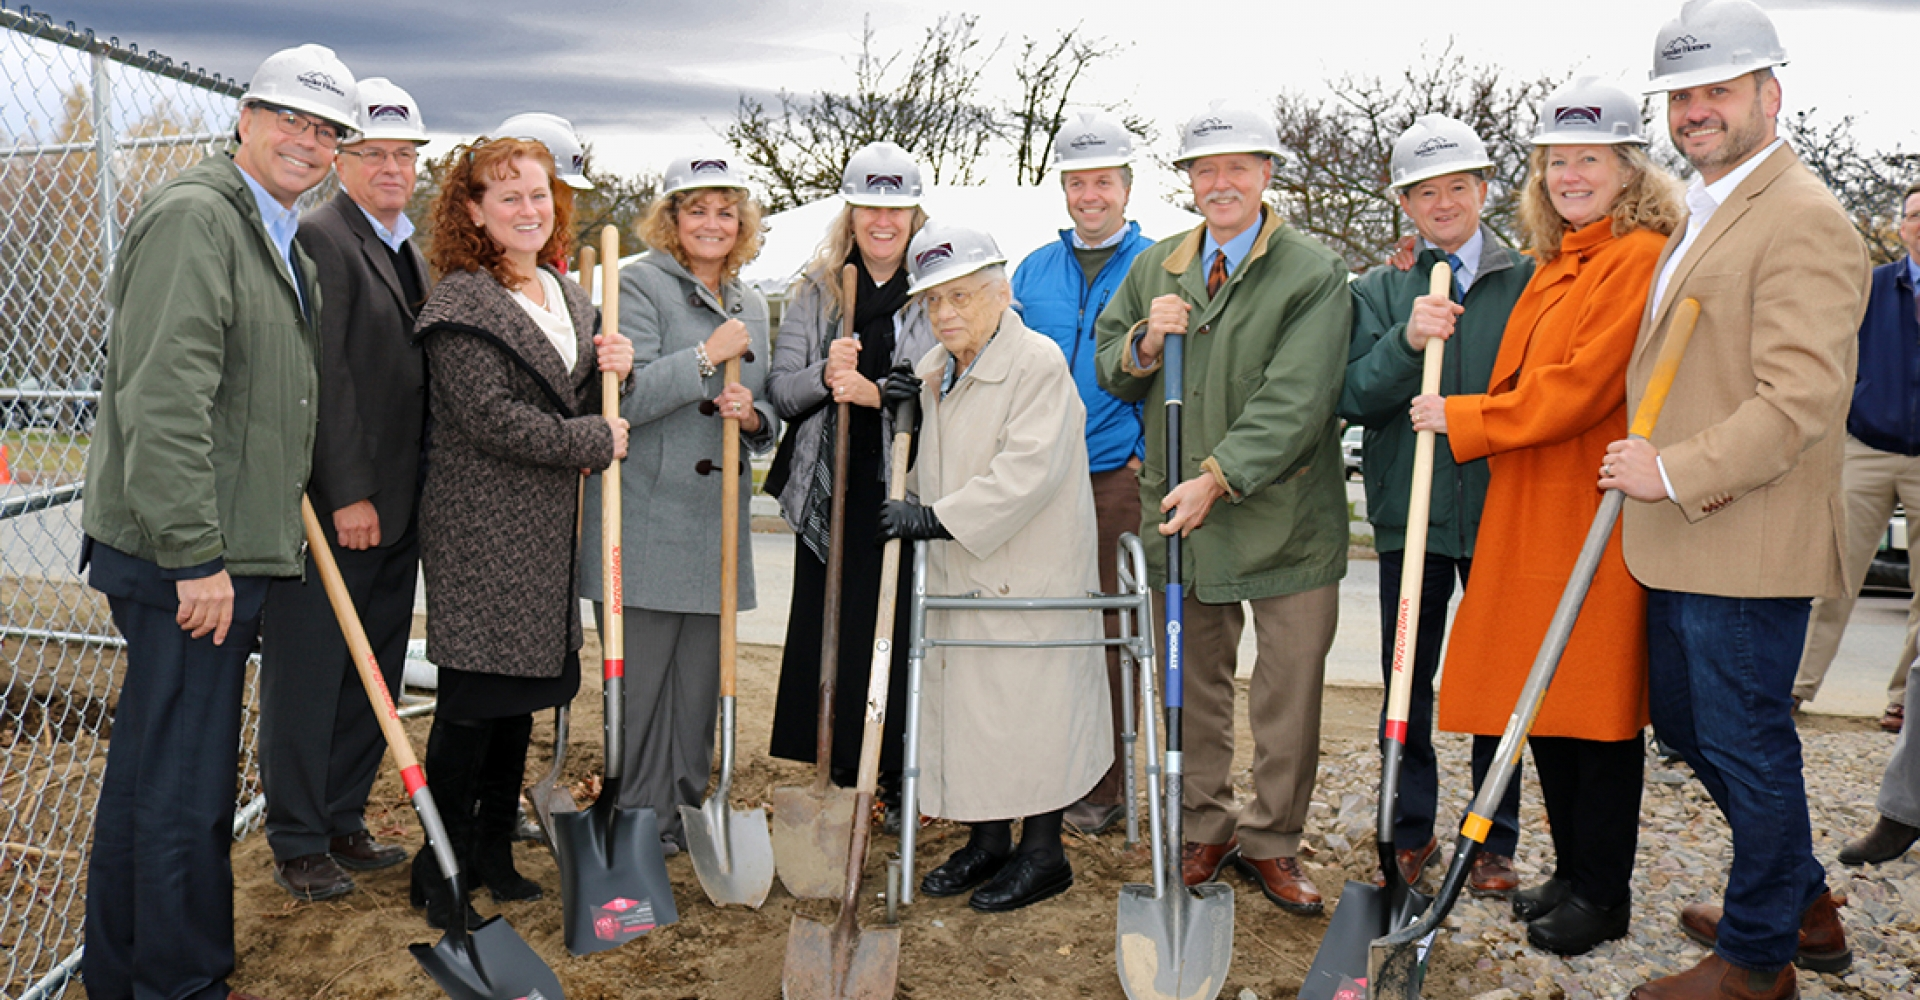 Ground Breaking for Allard Square, 39 apartments for seniors being developed by Cathedral Square Corporation in South Burlington